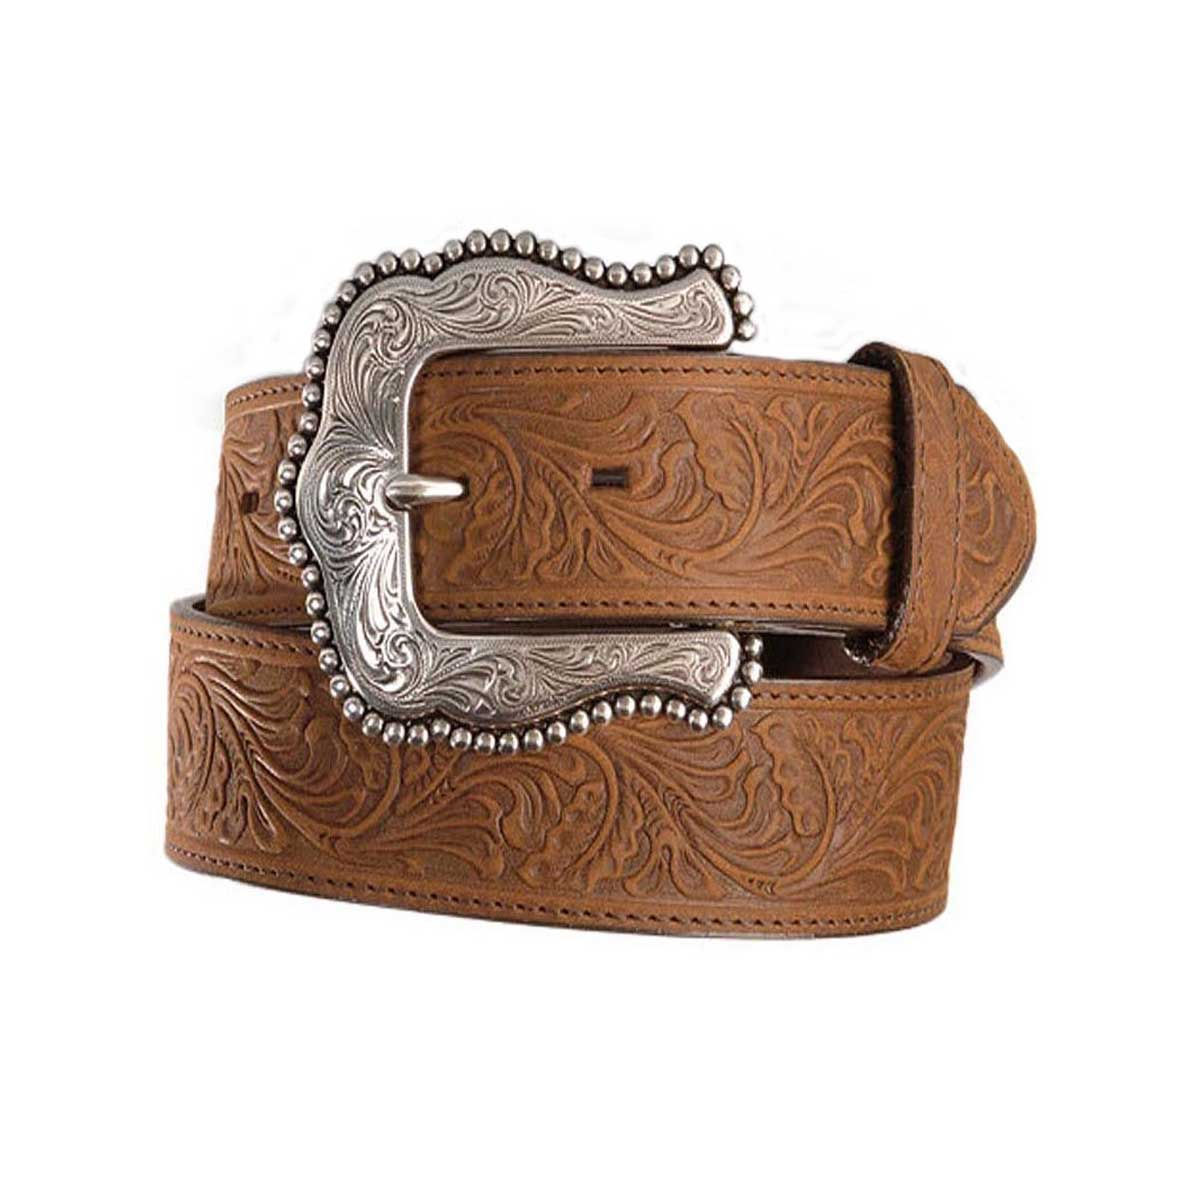 Leegin Creative Leather Women's Tony Lama Layla Floral Tooled Belt - Brown